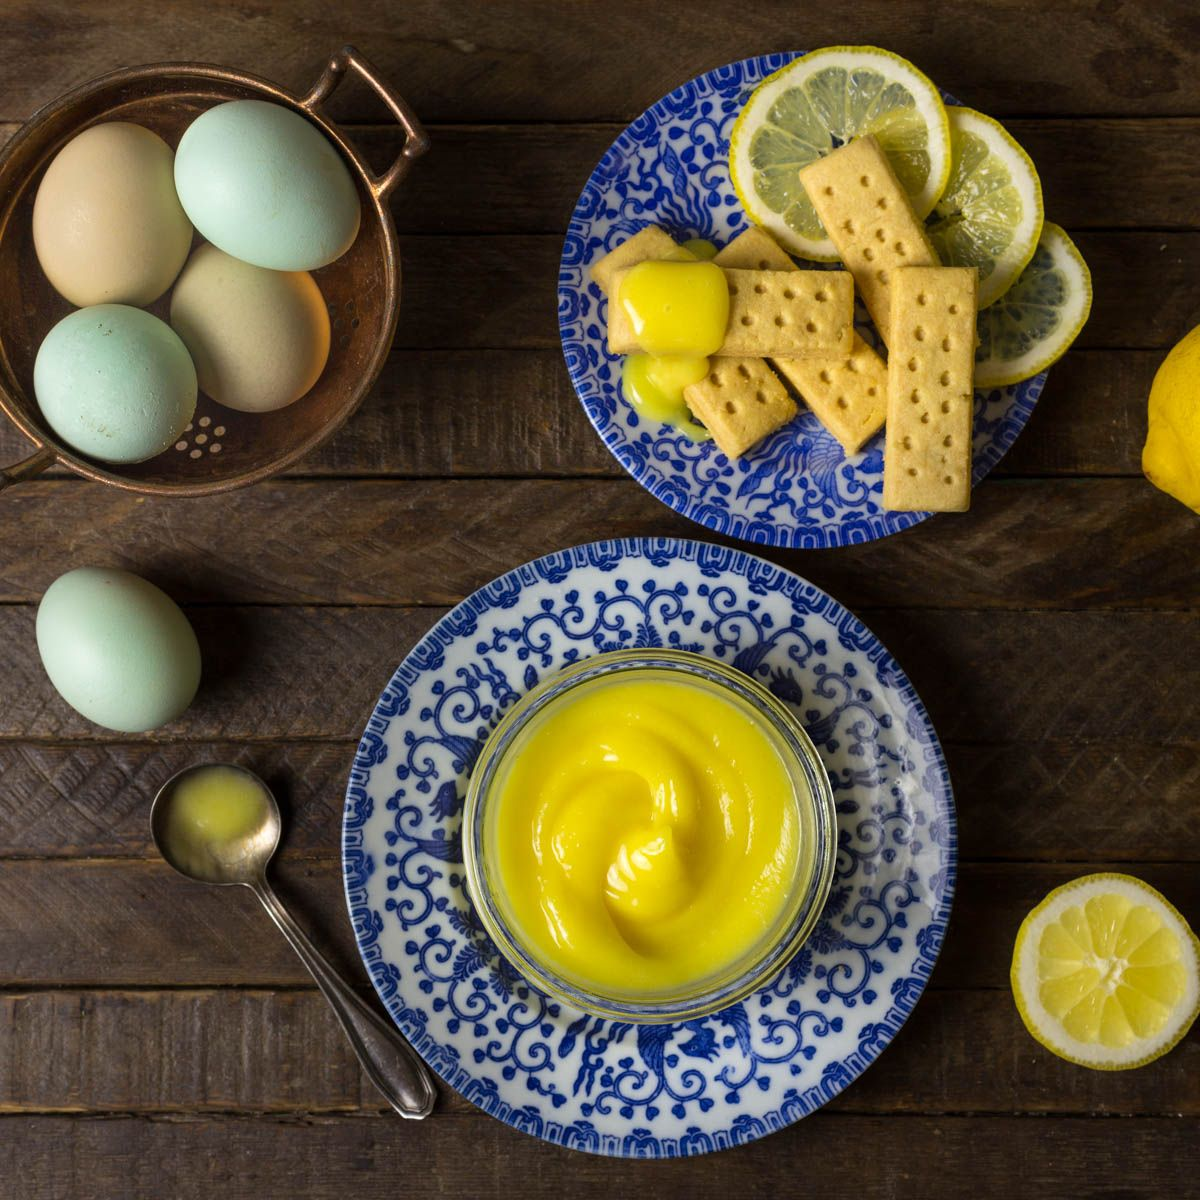 Lemon curd is a delicious sweet, tart condiment that's really easy to make with just a few ingredients. You'll never use store-bought curd again!